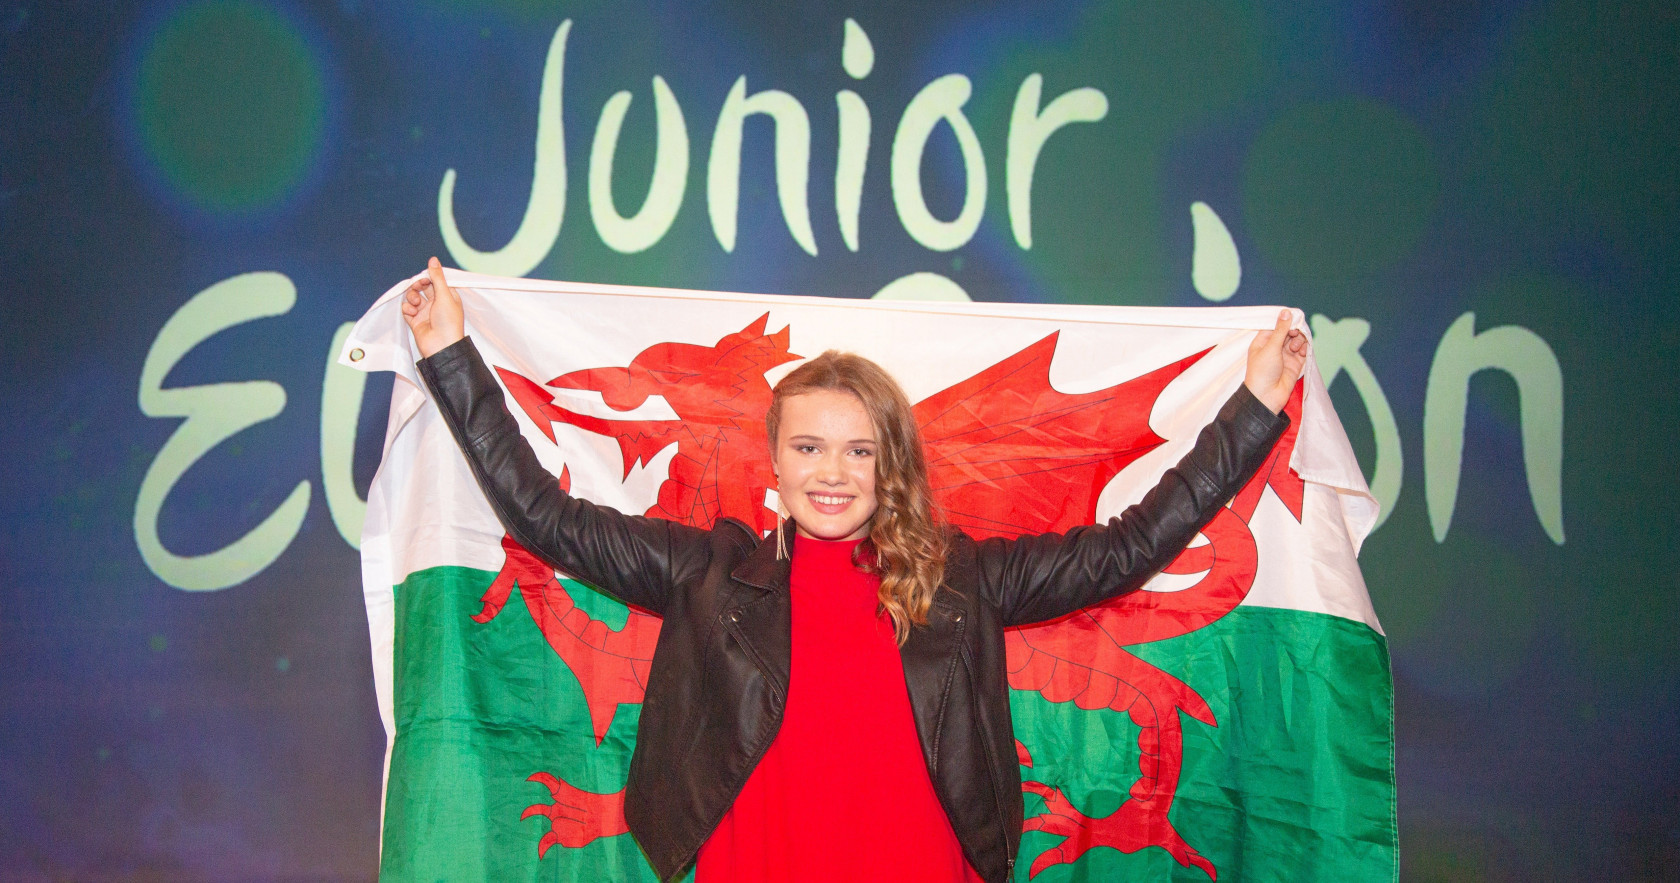 Wales: National broadcaster S4C has frozen all decisions regarding  Junior Eurovision 2020 participation